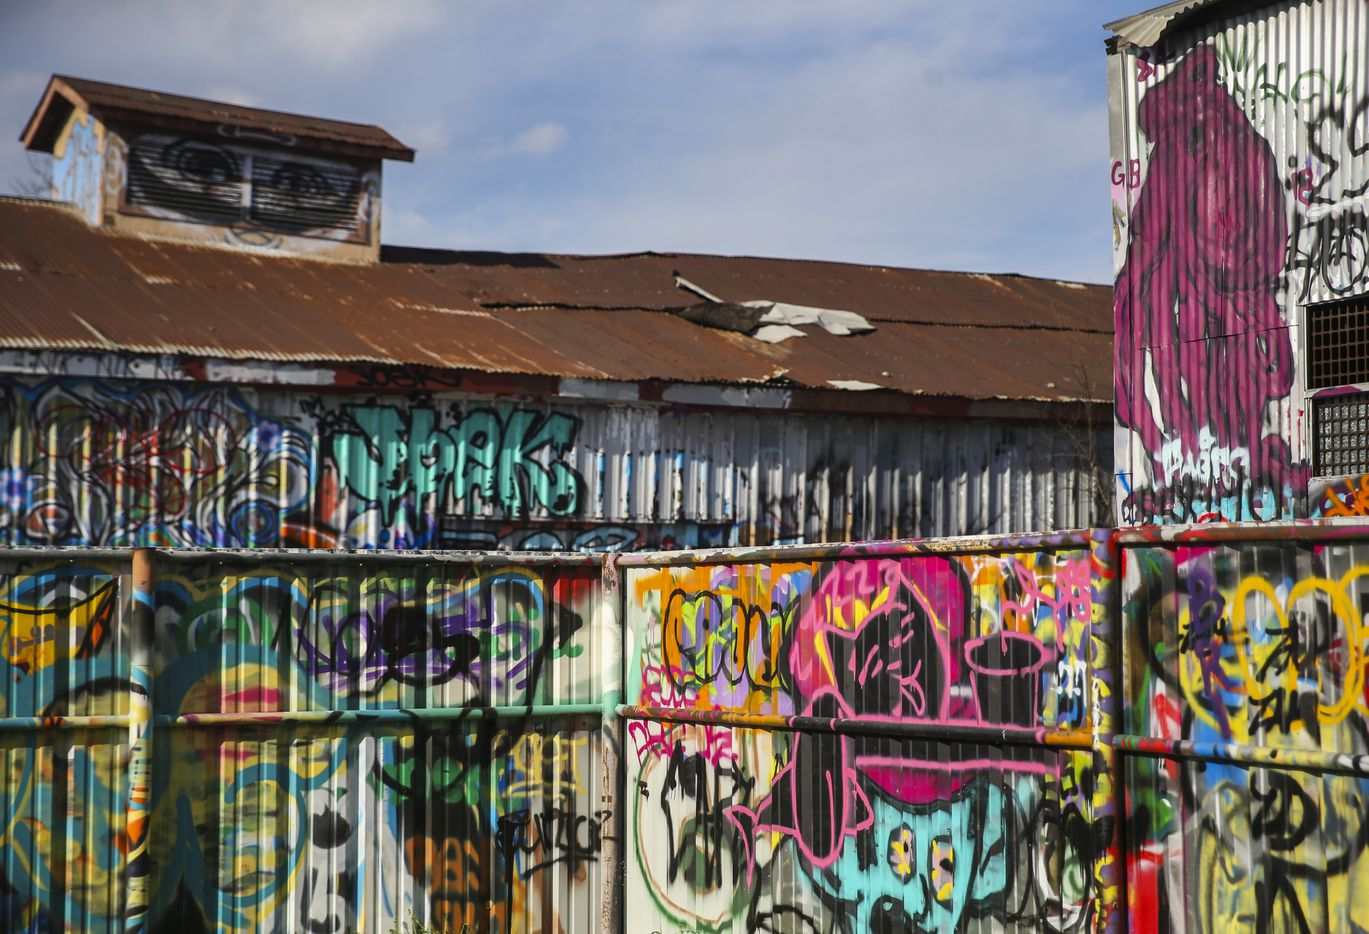 The former metal stamping plant buildings are now a factory for street artists.